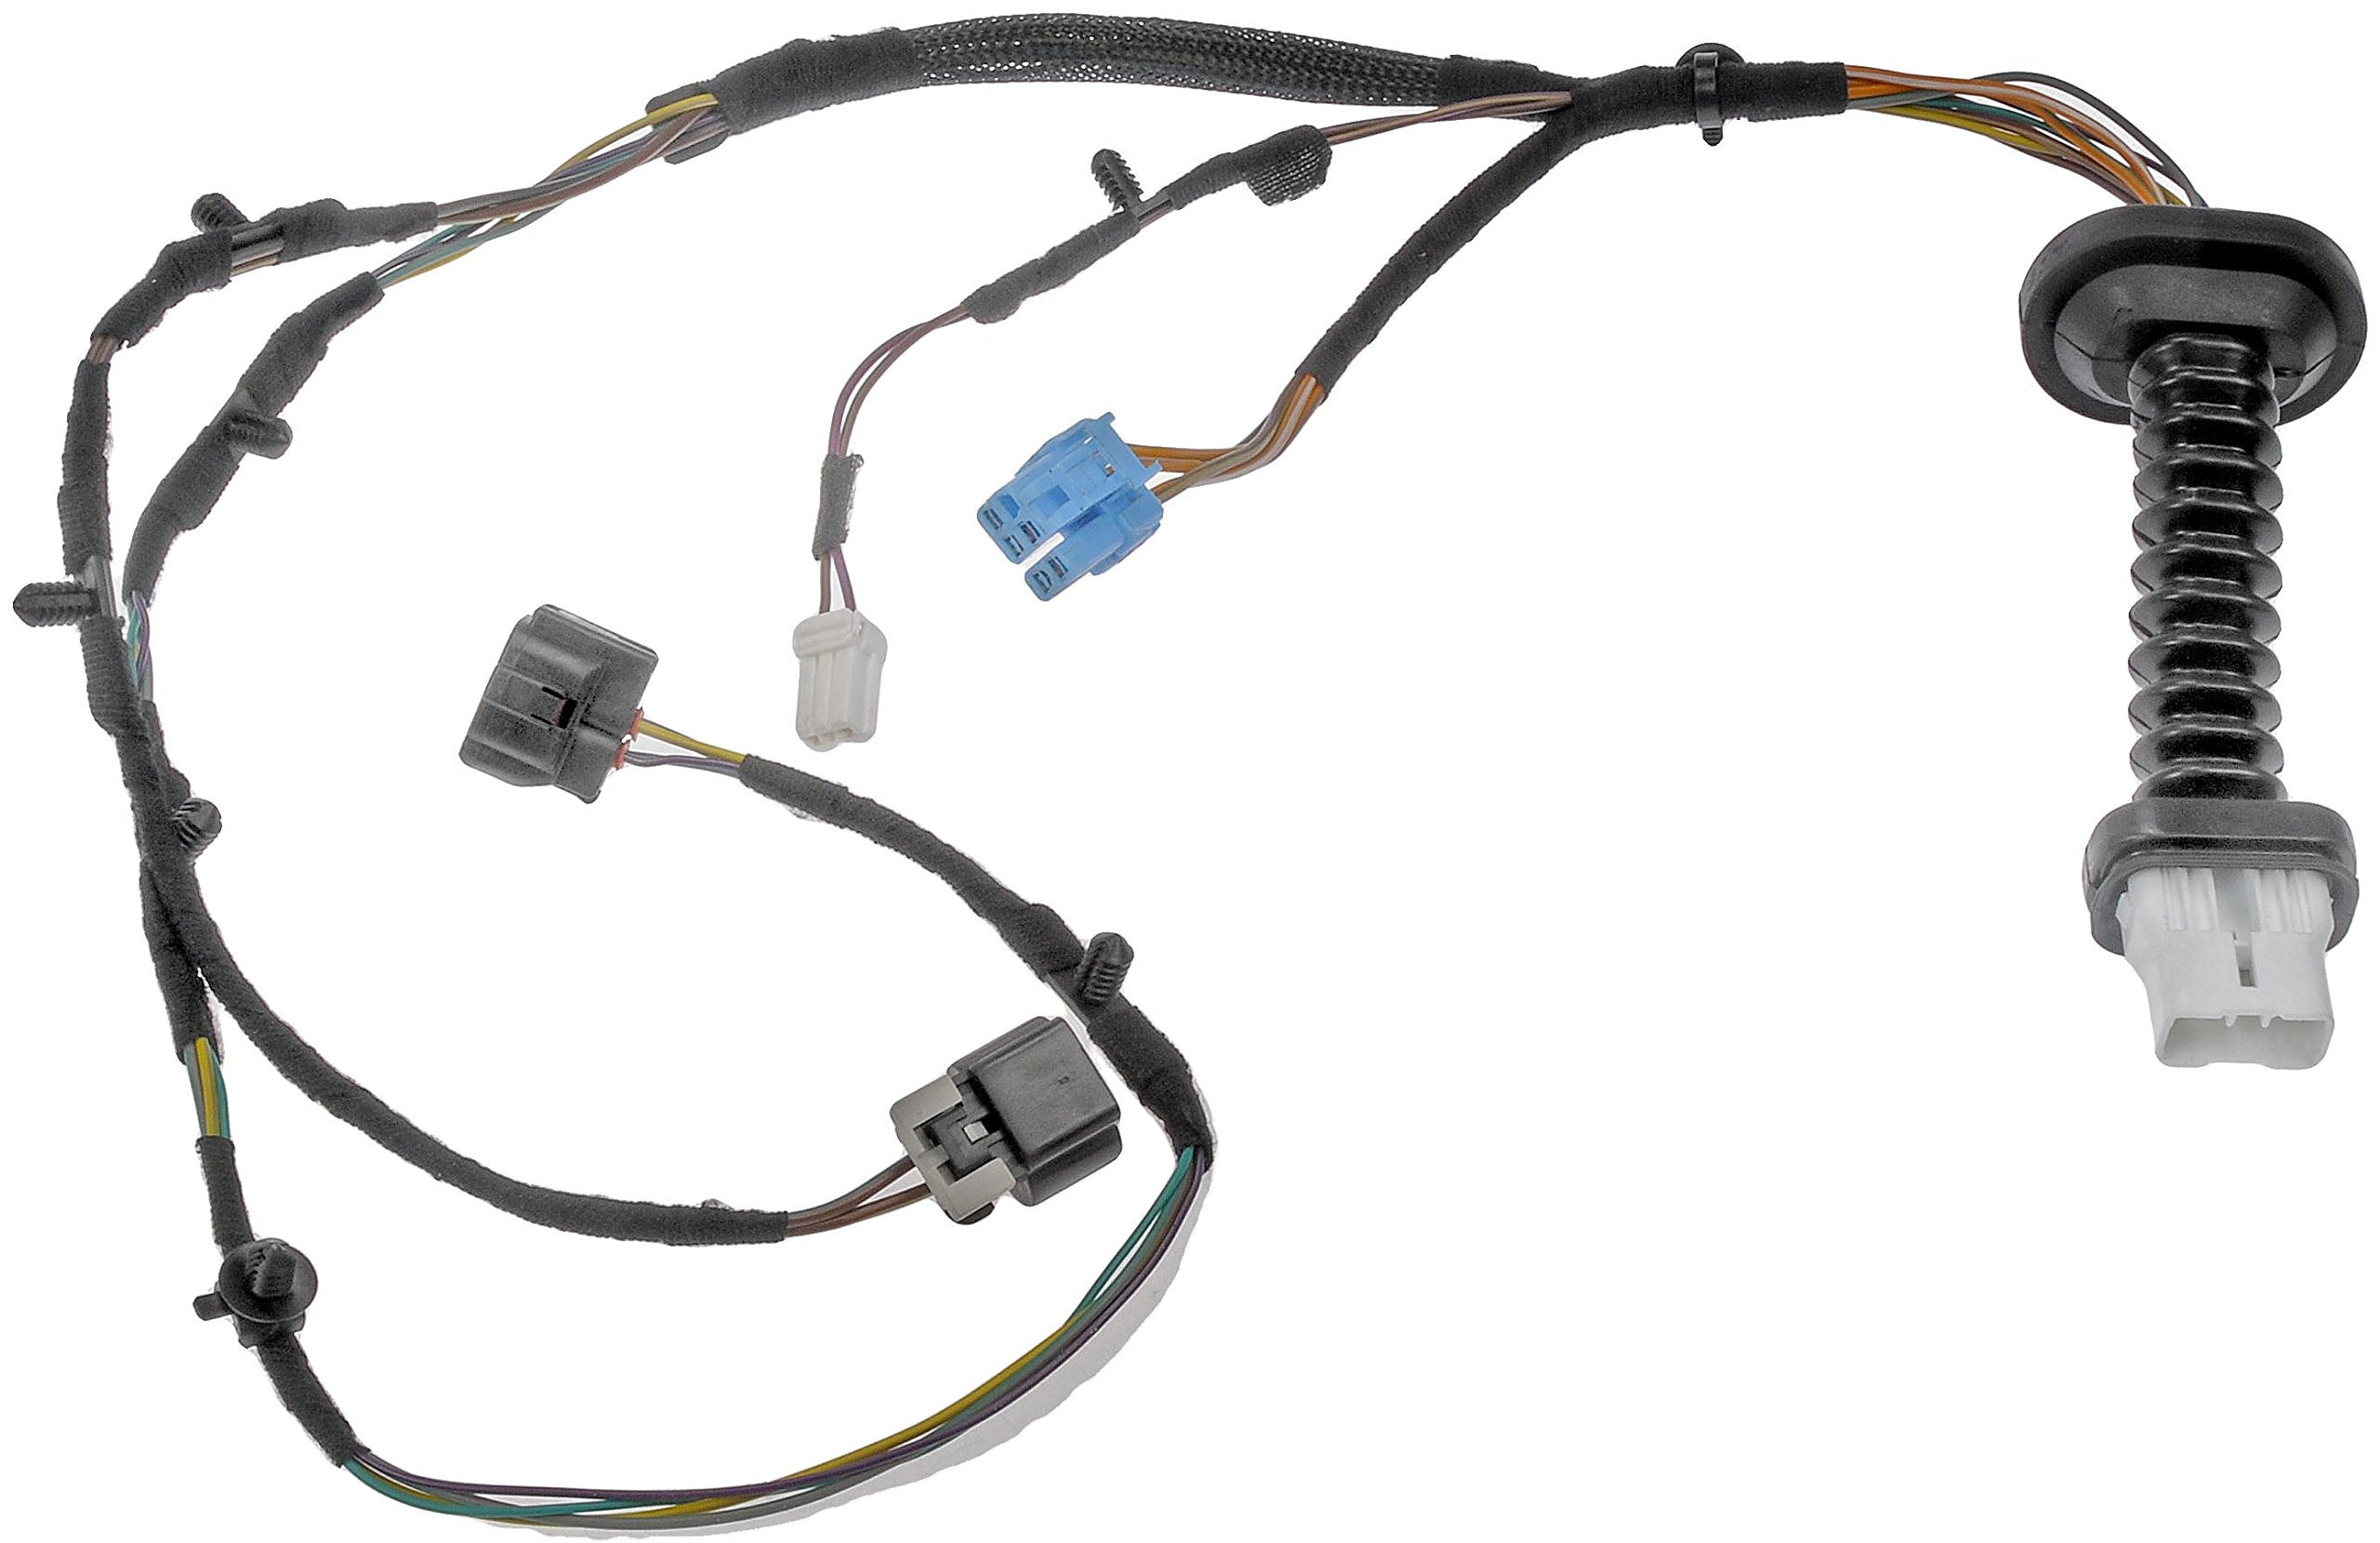 Amazon.com: Dorman 645-506 Door Harness With Connectors: AutomotiveAmazon.com